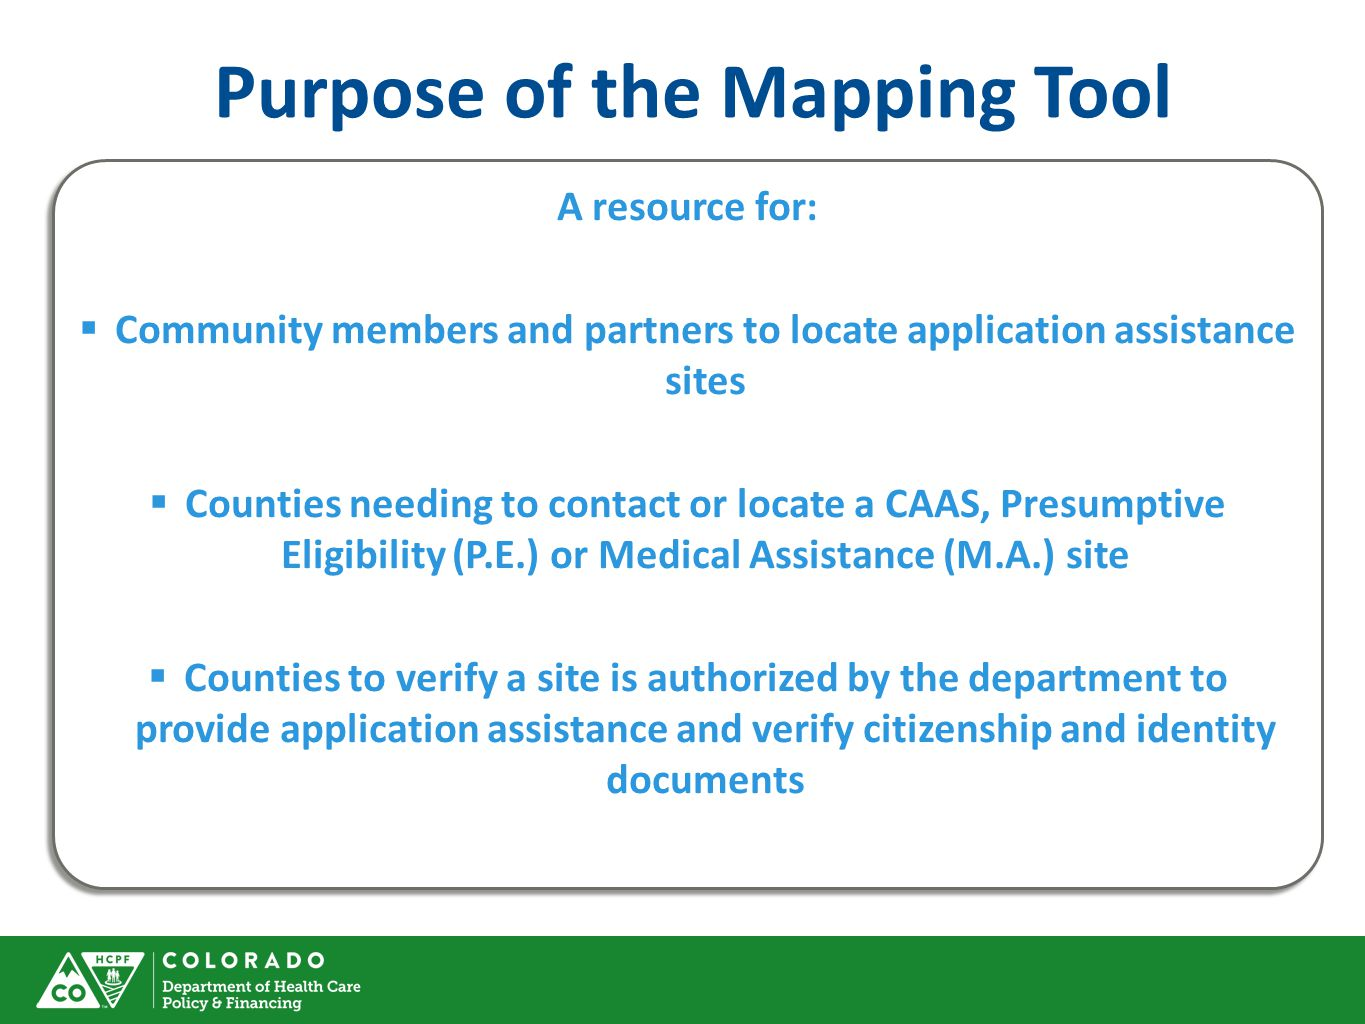 Purpose of the Mapping Tool